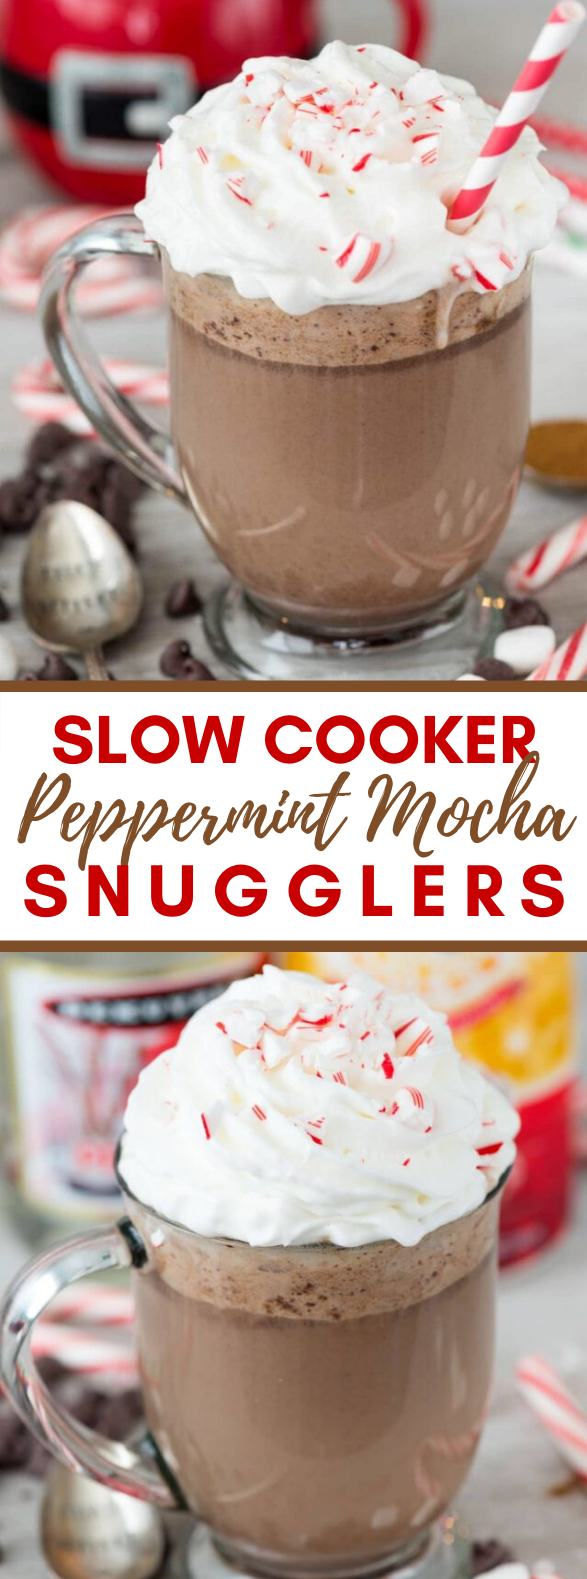 Slow Cooker Peppermint Mocha Snugglers #drinks #kidfriendly